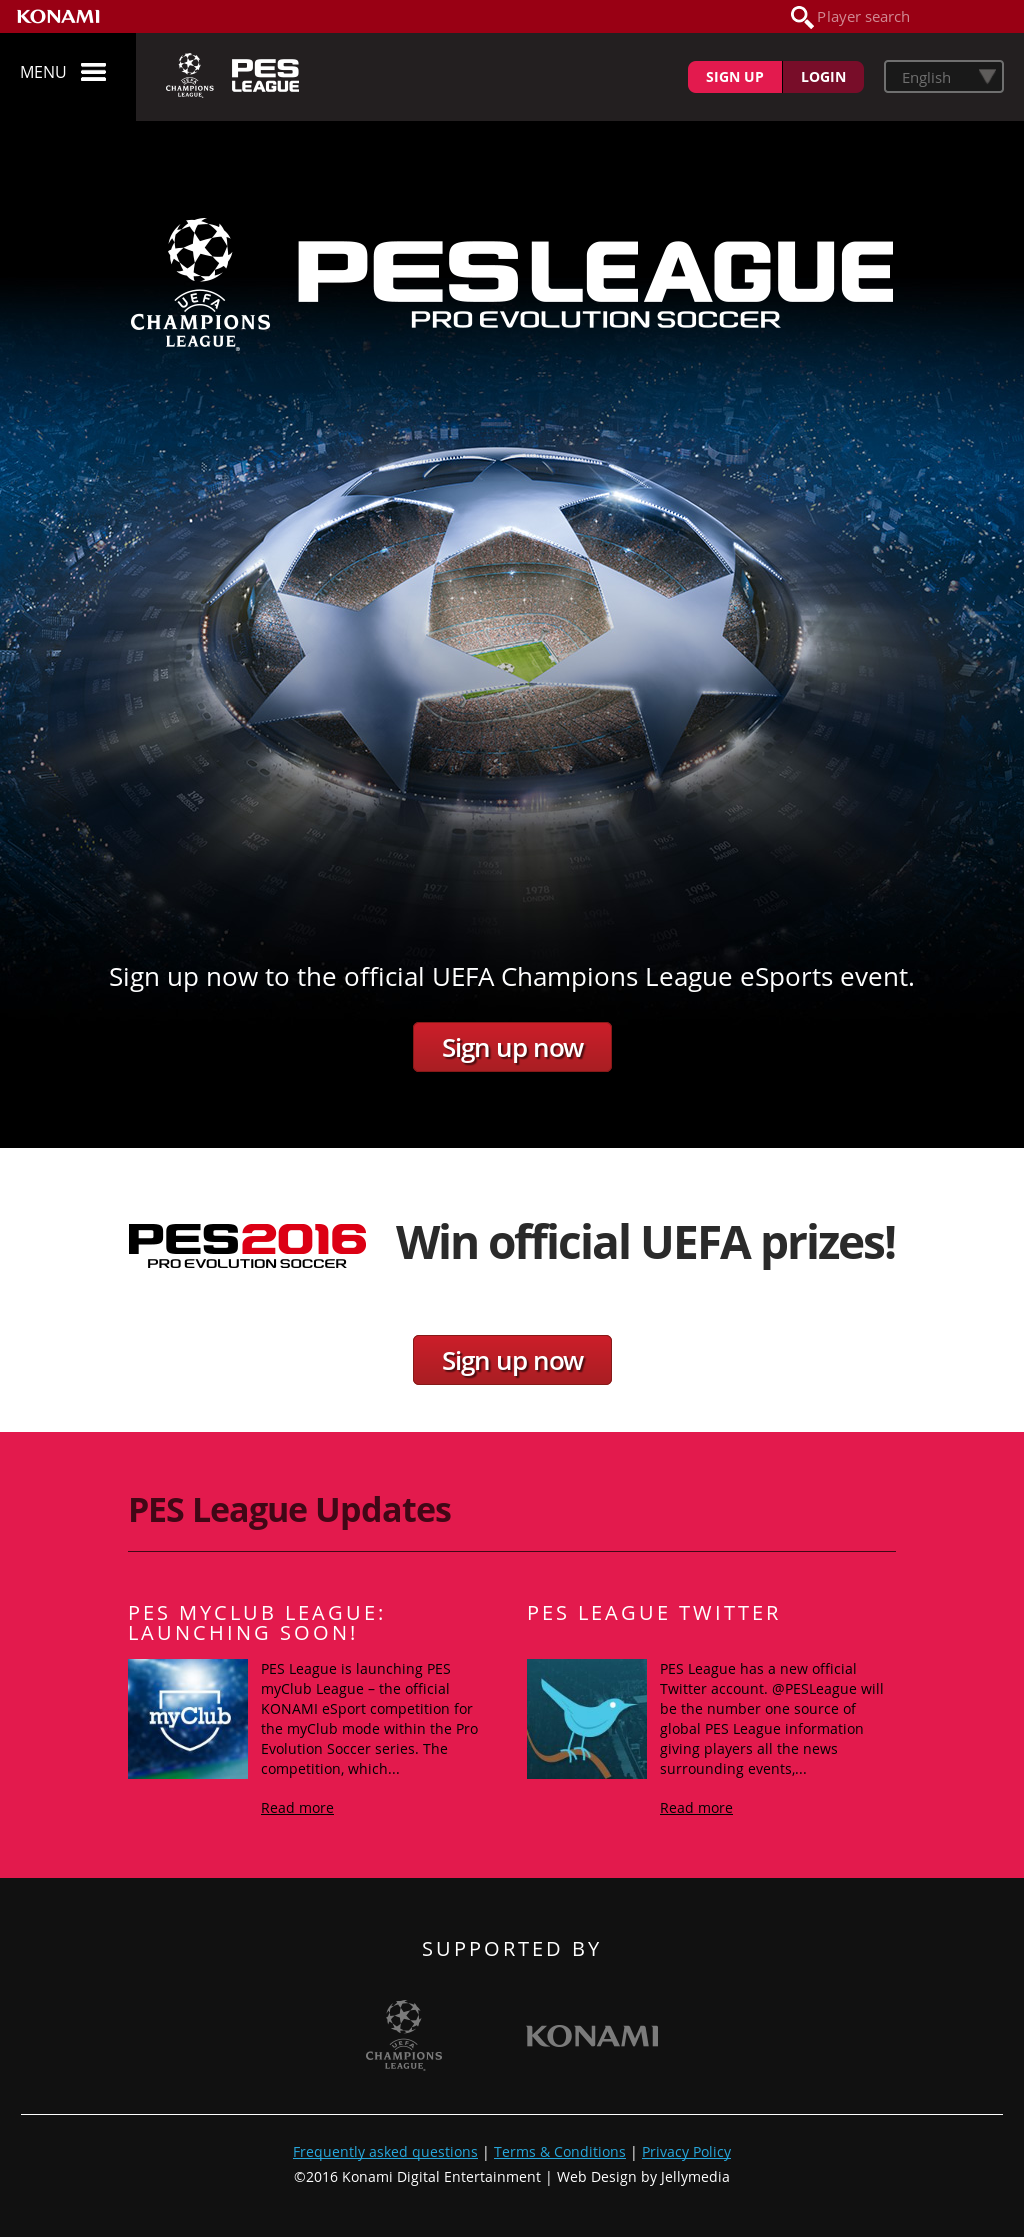 Pes League Uk Competitors, Revenue and Employees - Owler Company Profile